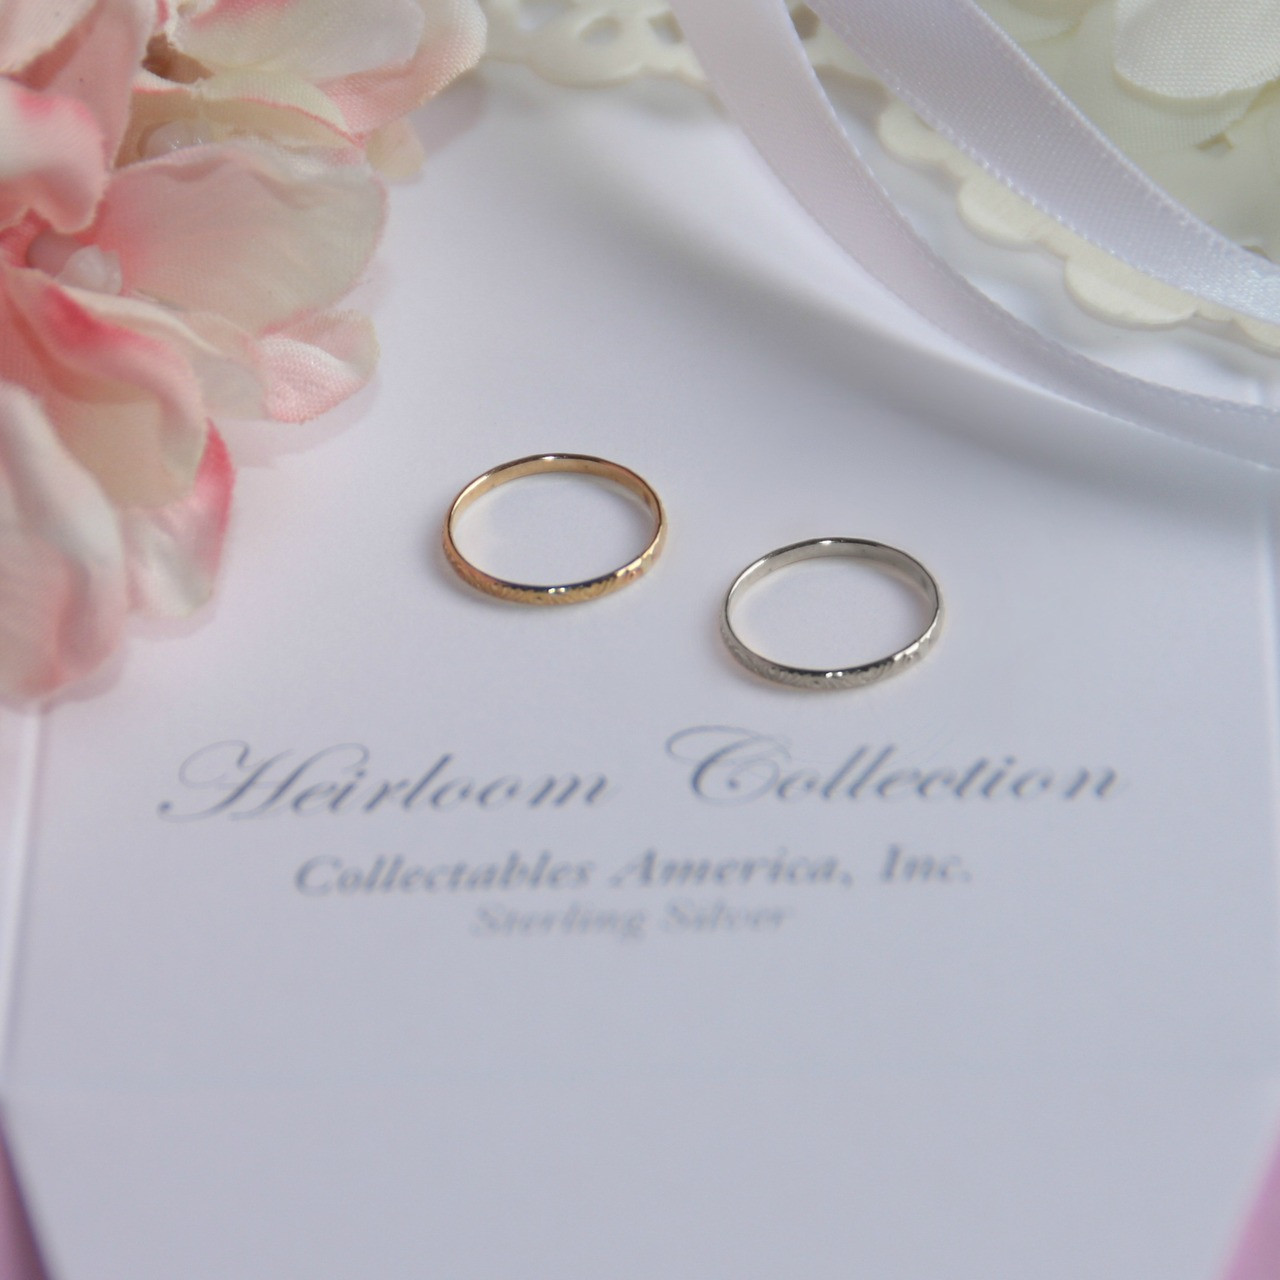 BA-3  Infant Baby Ring Sterling Silver with 14kt. Yellow Gold Finish